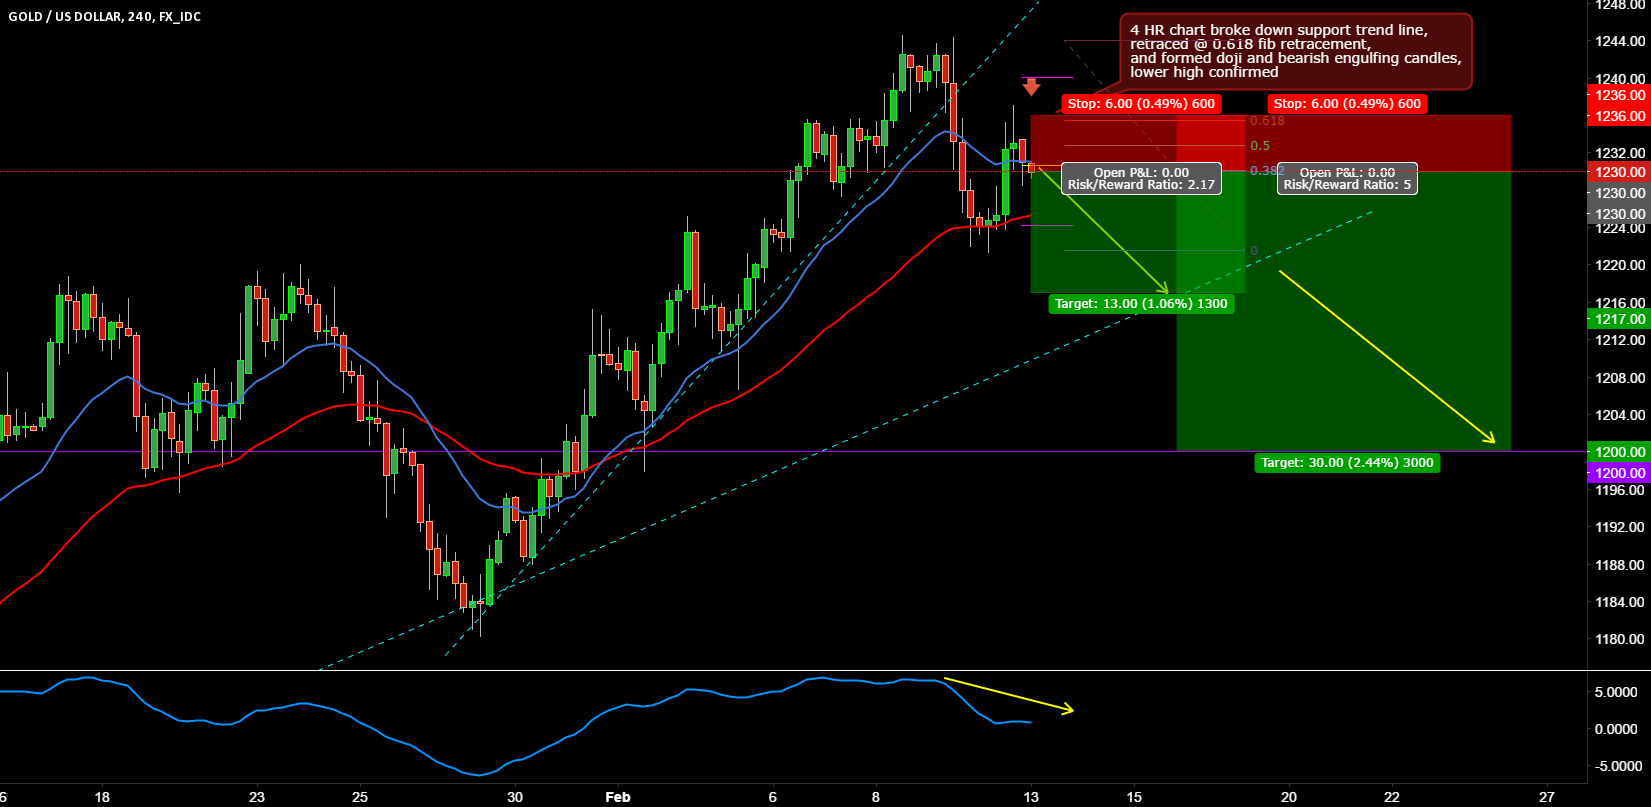 XAUUSD (GOLD) SHORT TRADE SETUP